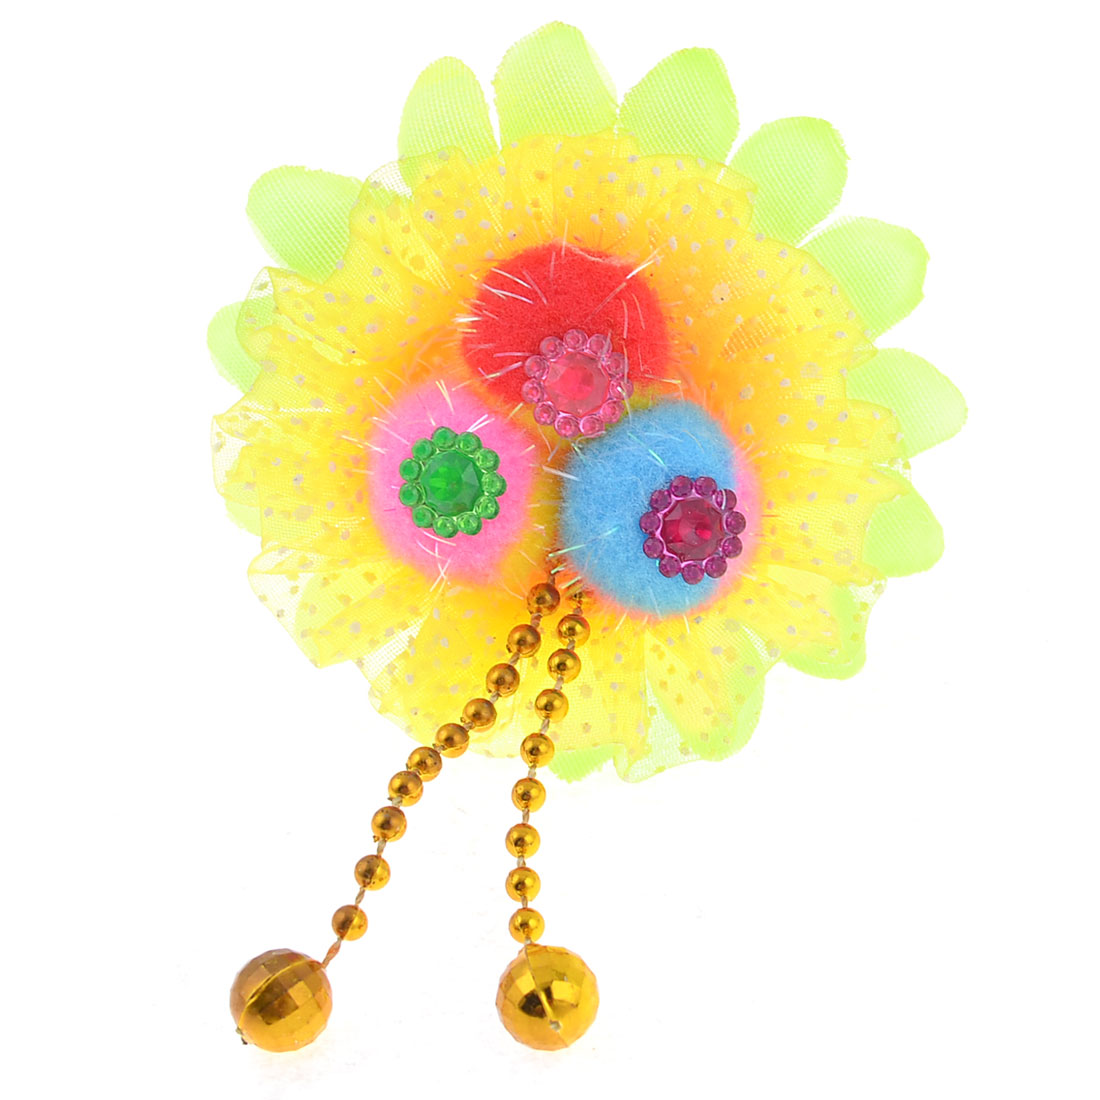 Dots Print Elastic Rubber Band Hair Tie Holder Yellow Red for Kids